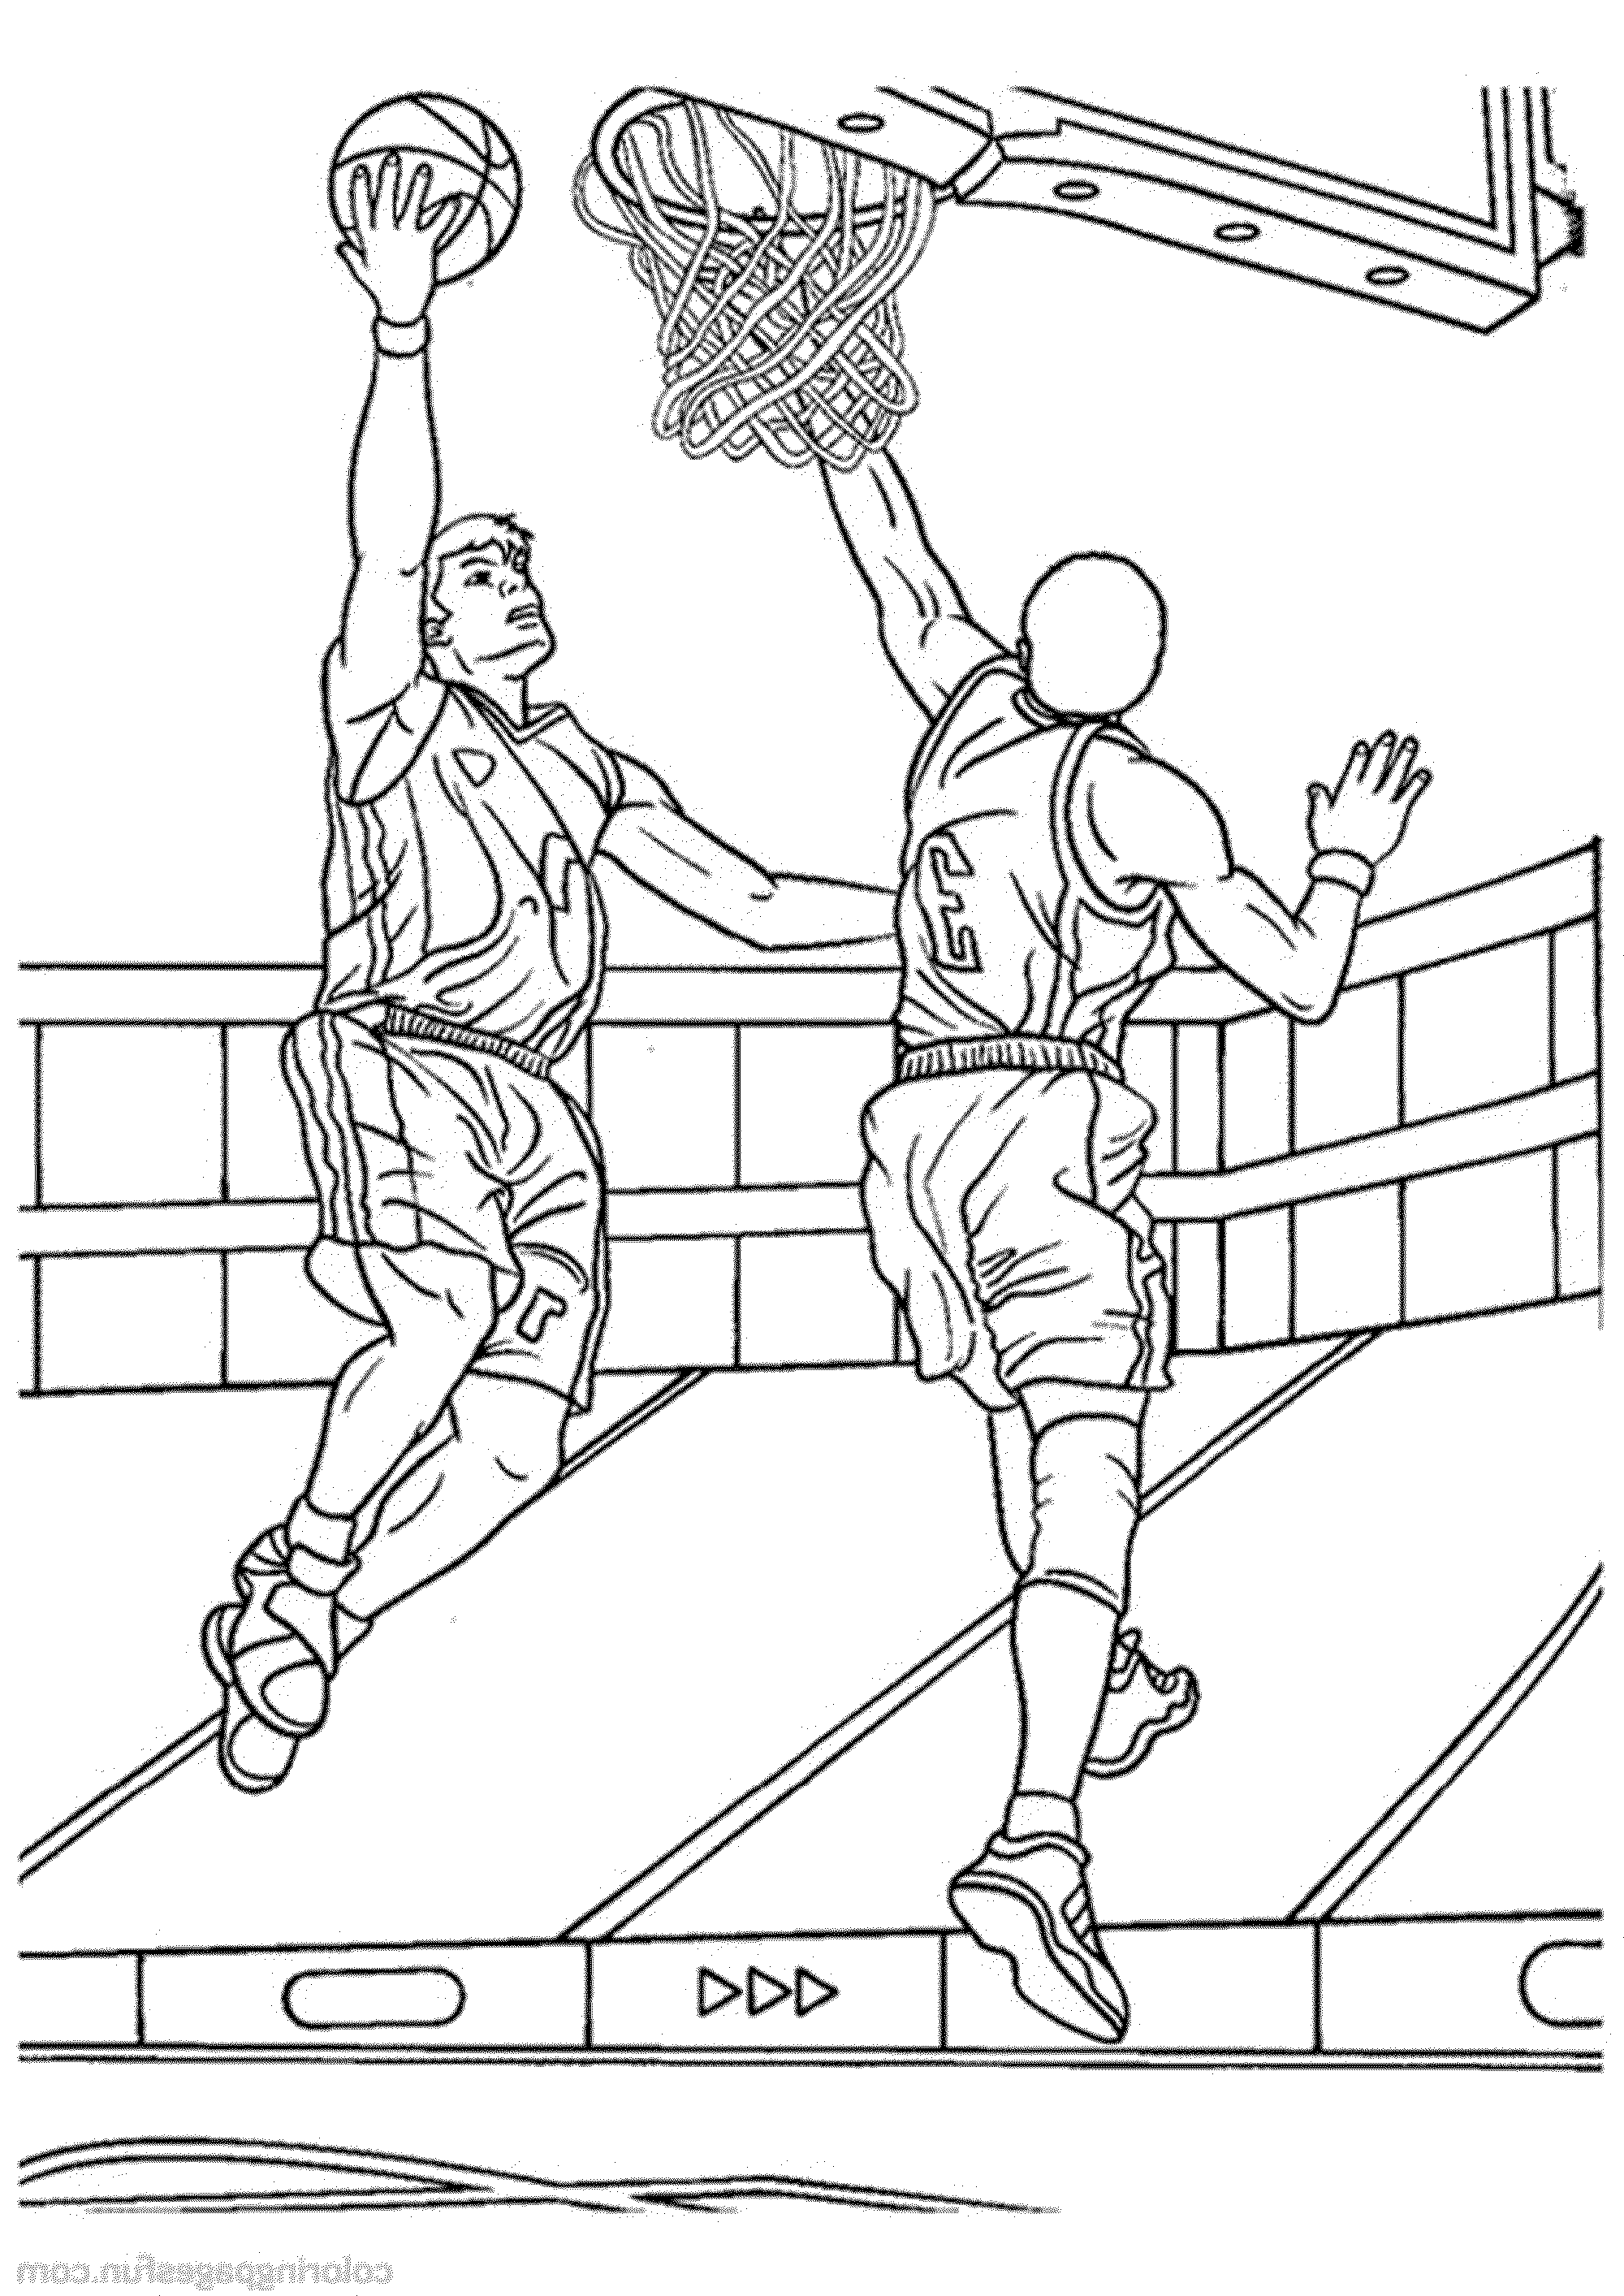 basketball-coloring-page-0001-q1